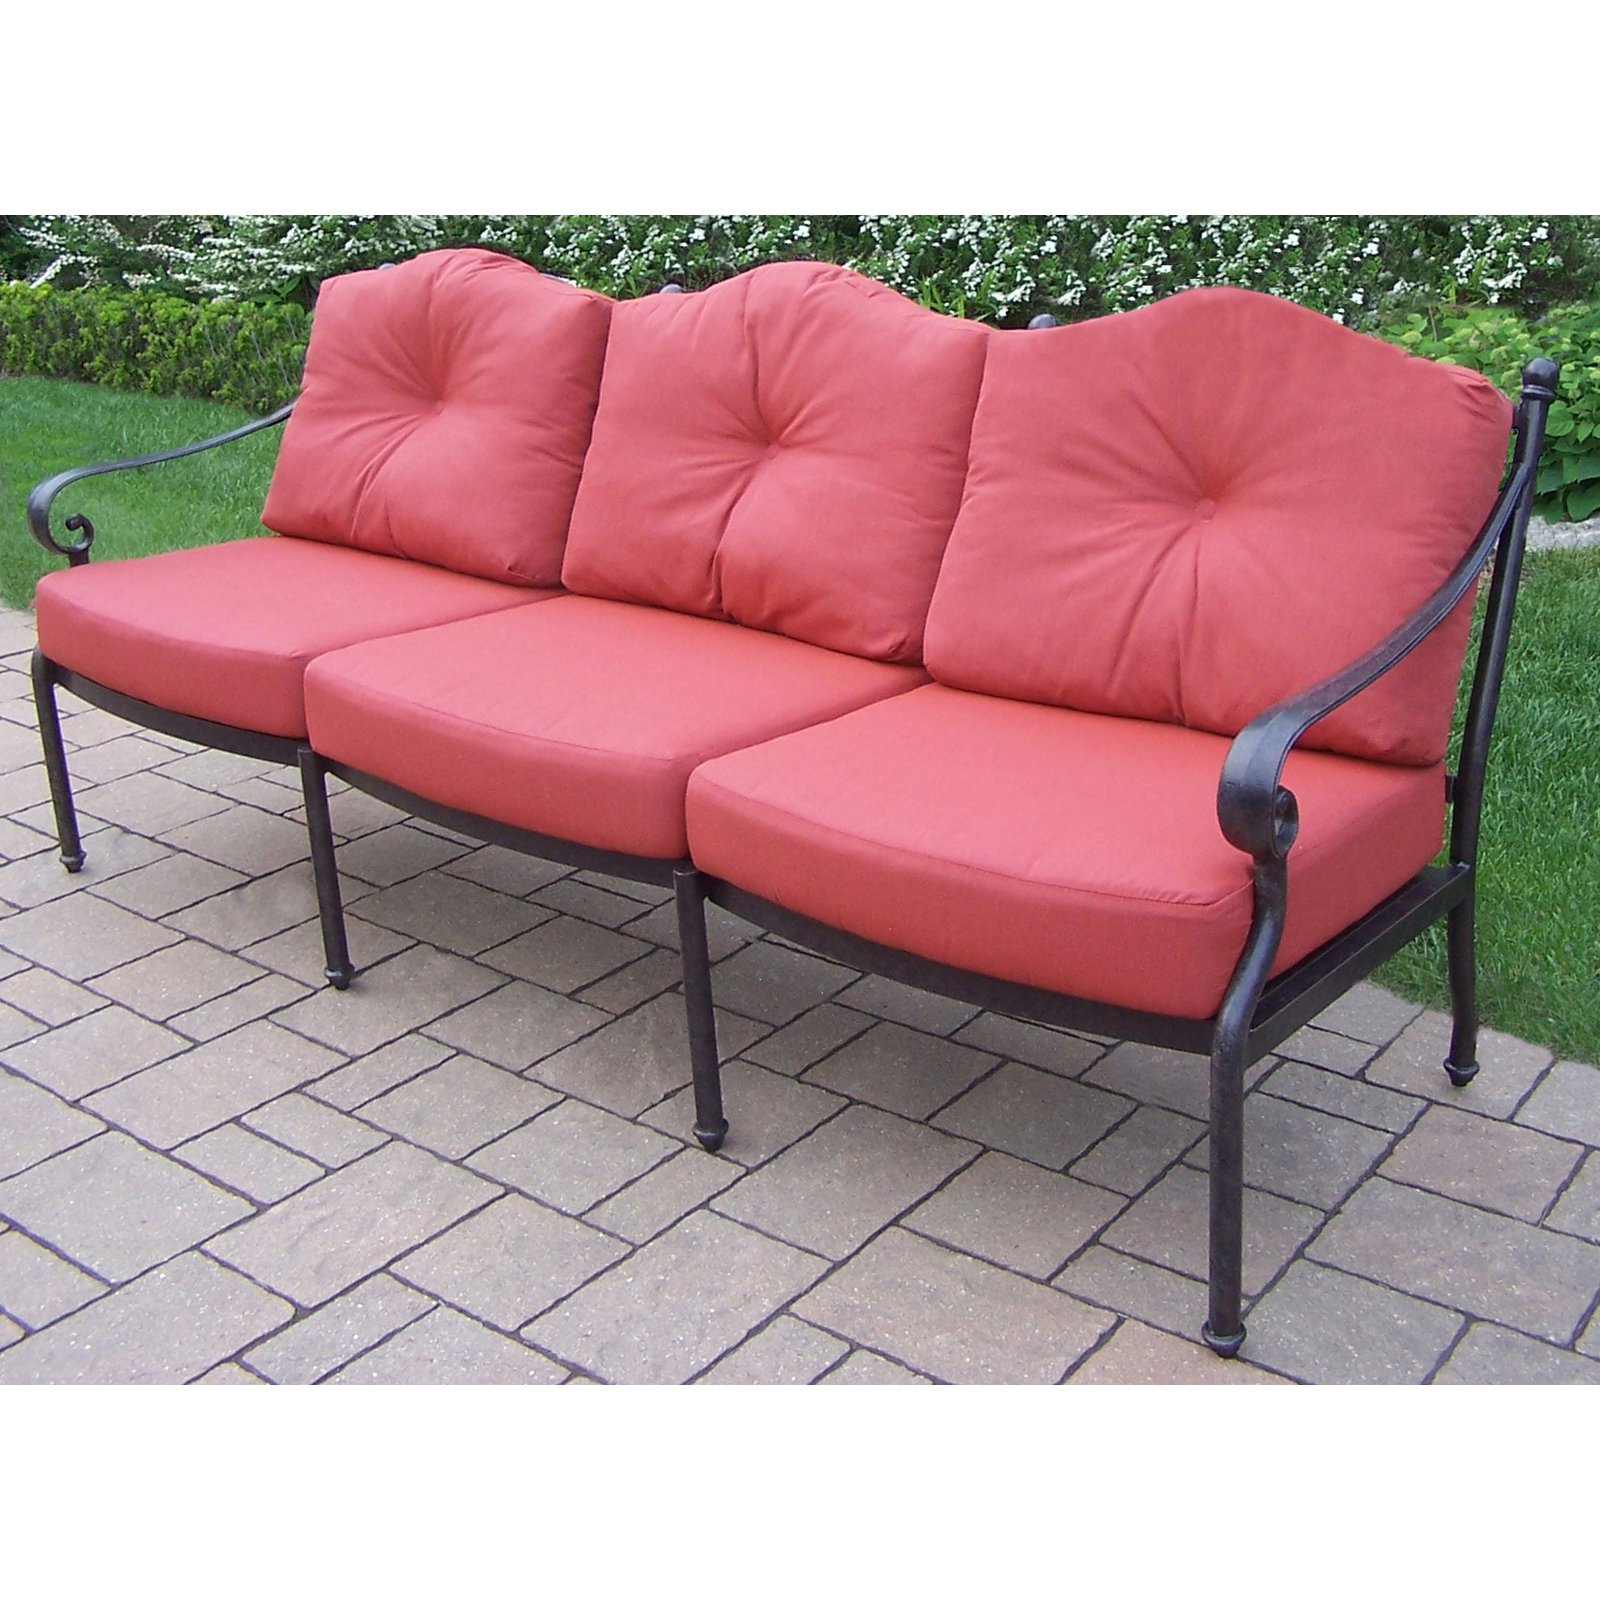 Oakland Living Berkley Patio Sofa with Cushion by Oakland Living Corporation